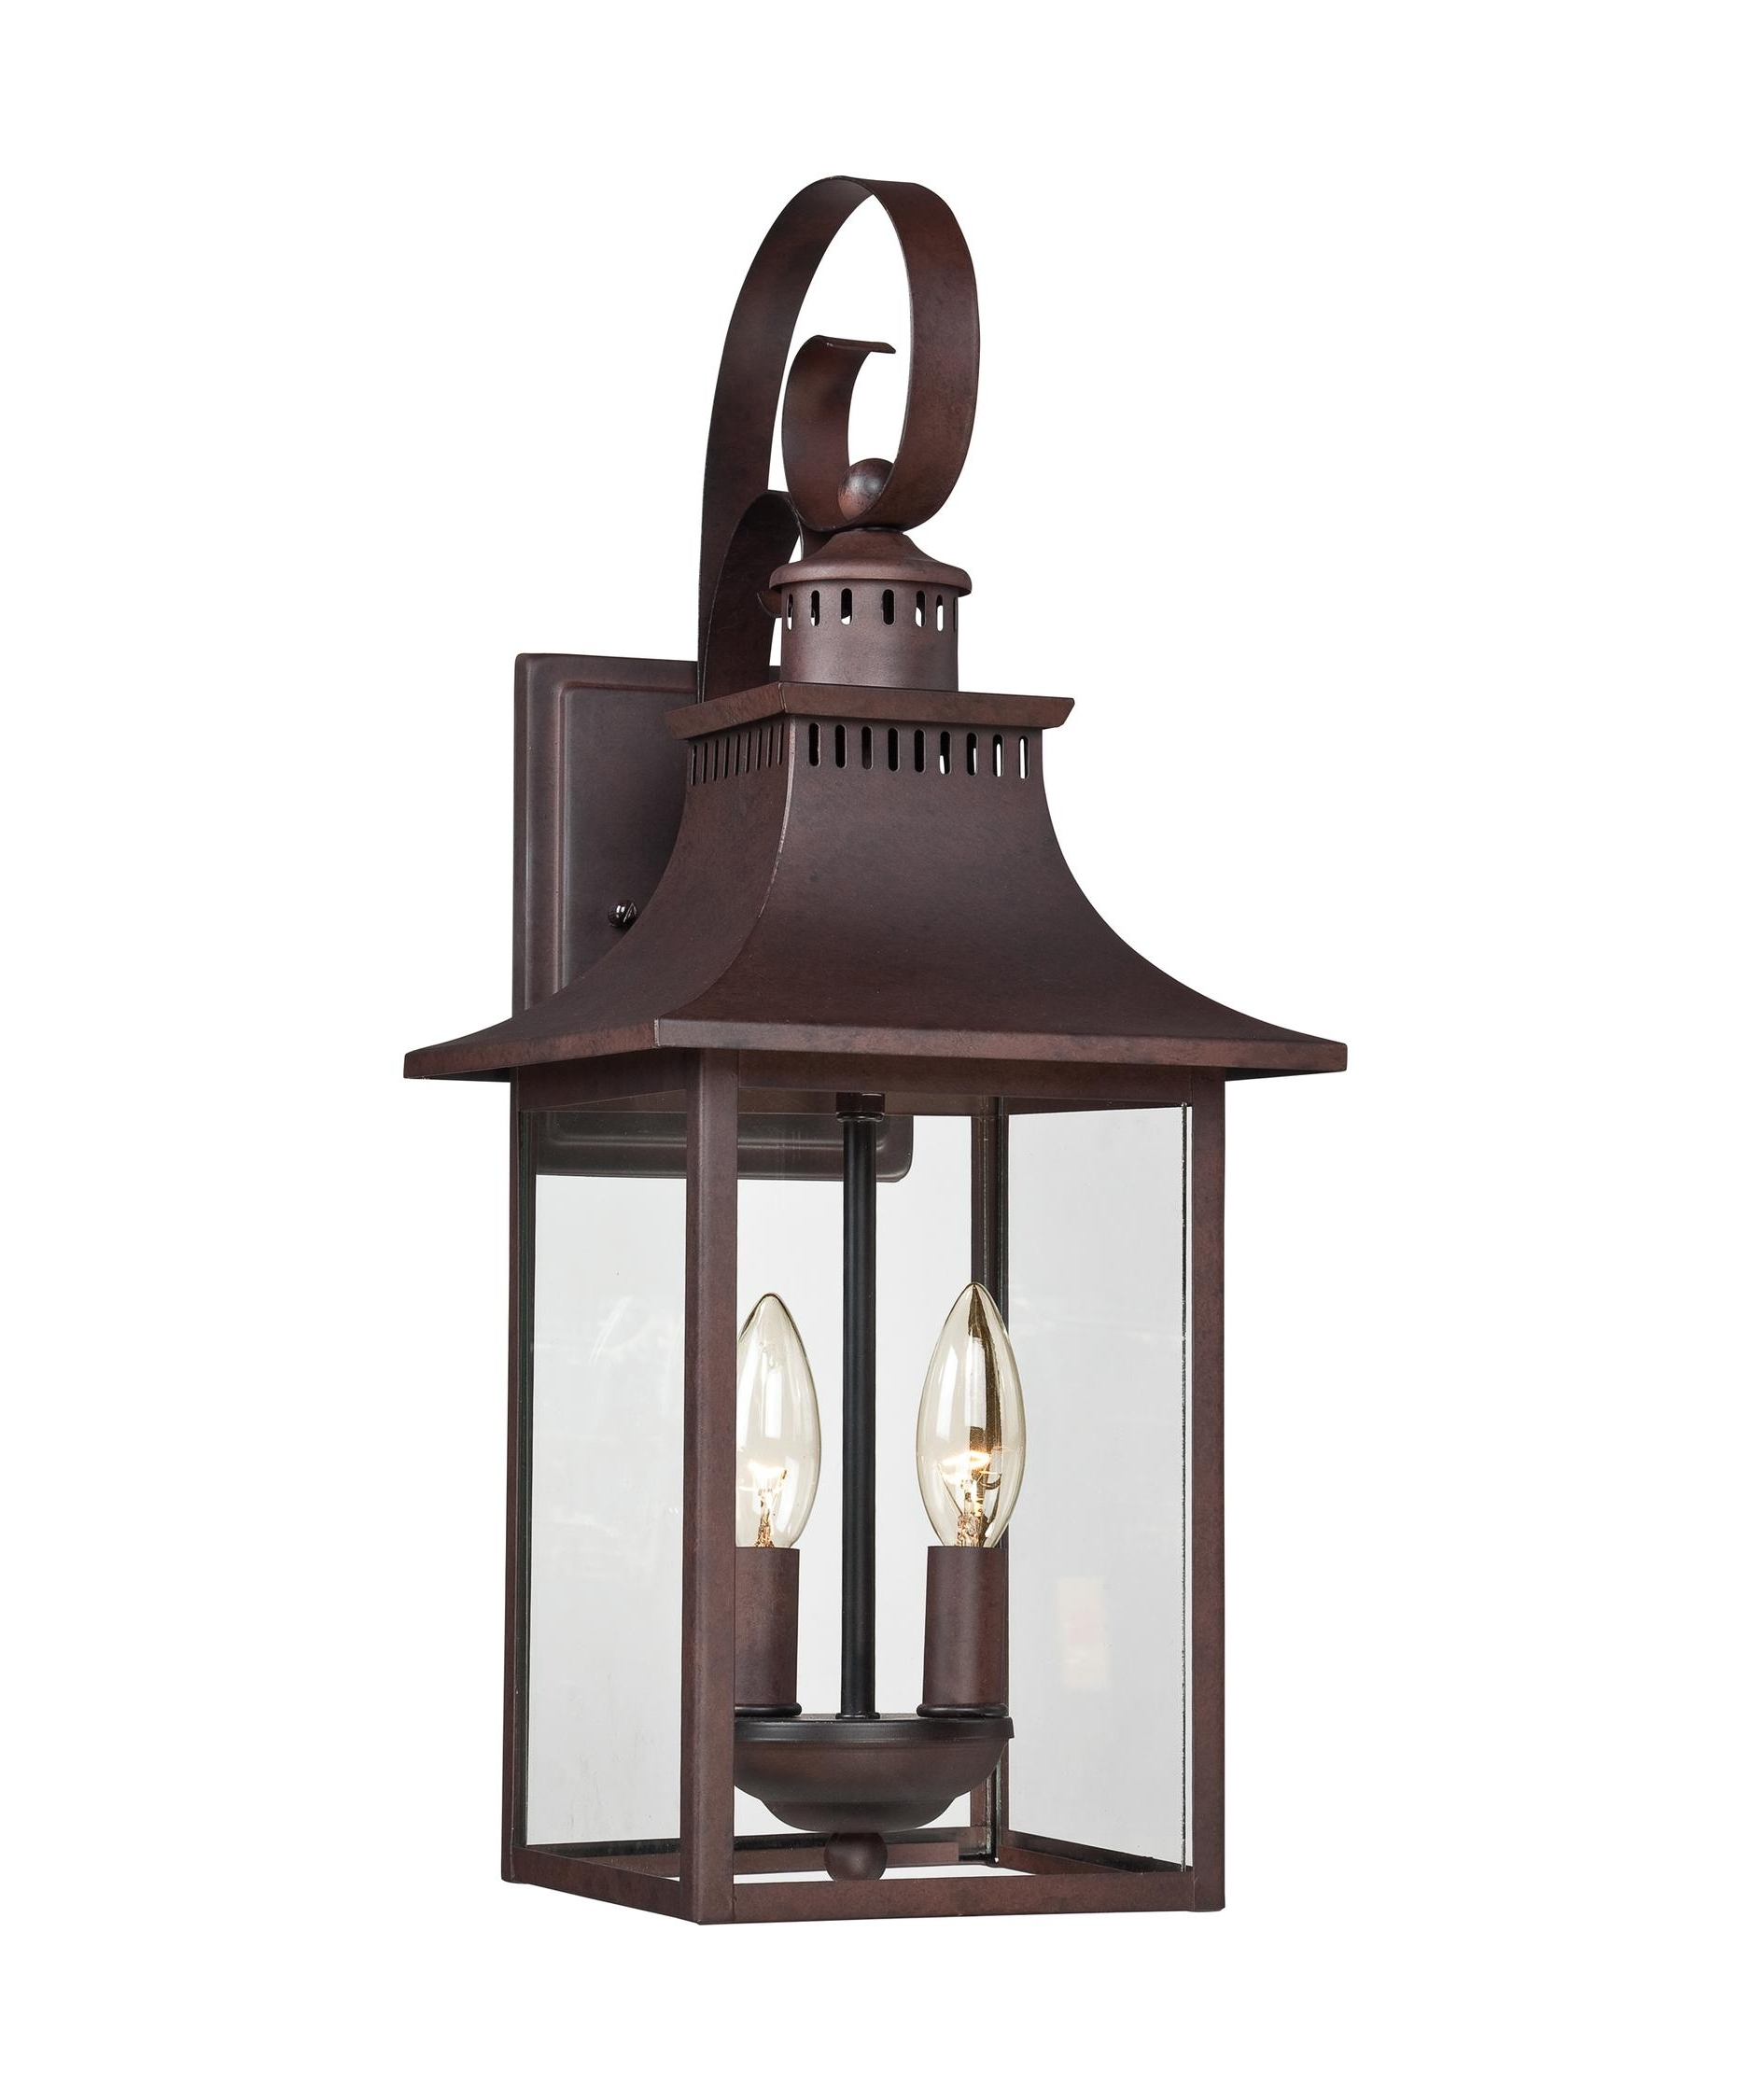 Popular Quoizel Outdoor Lanterns Within Quoizel Ccr8408 Chancellor 8 Inch Wide 2 Light Outdoor Wall Light (View 2 of 20)